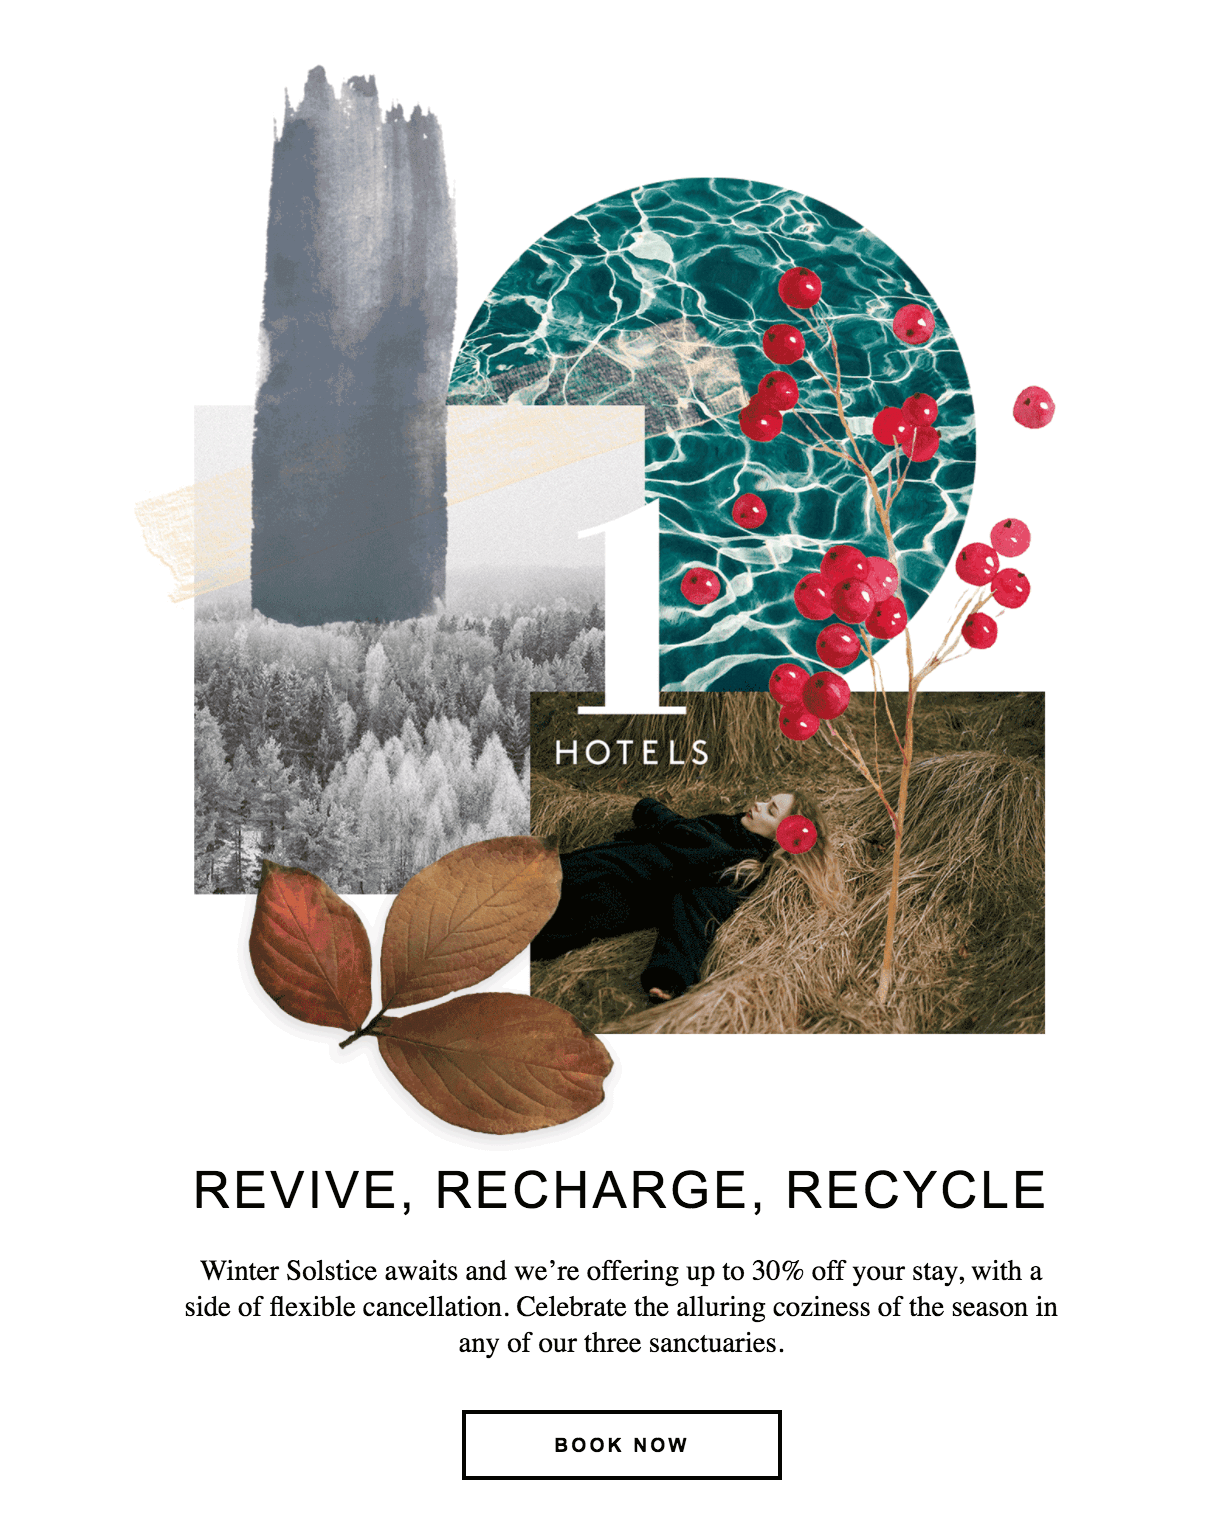 Revive Recharge Recycle